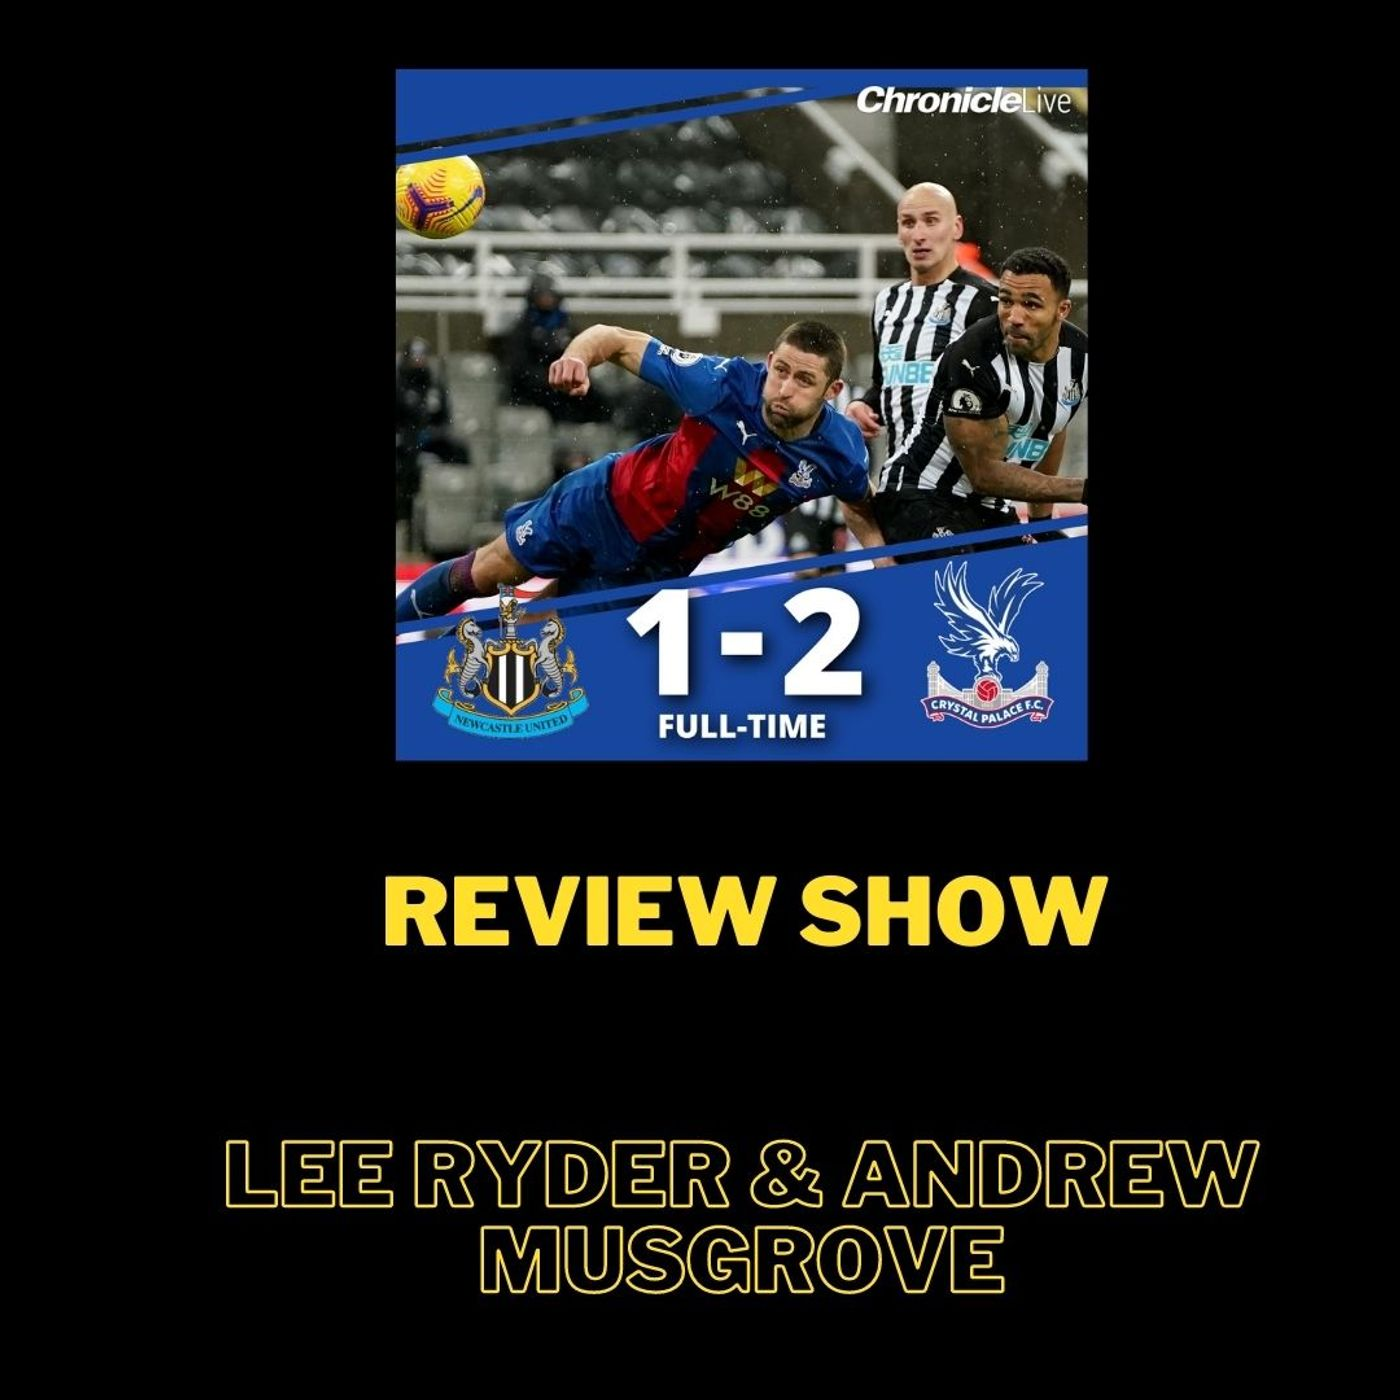 Just how long can Steve Bruce go on being pleased with his side's performance? Newcastle 1-2 Crystal Palace review